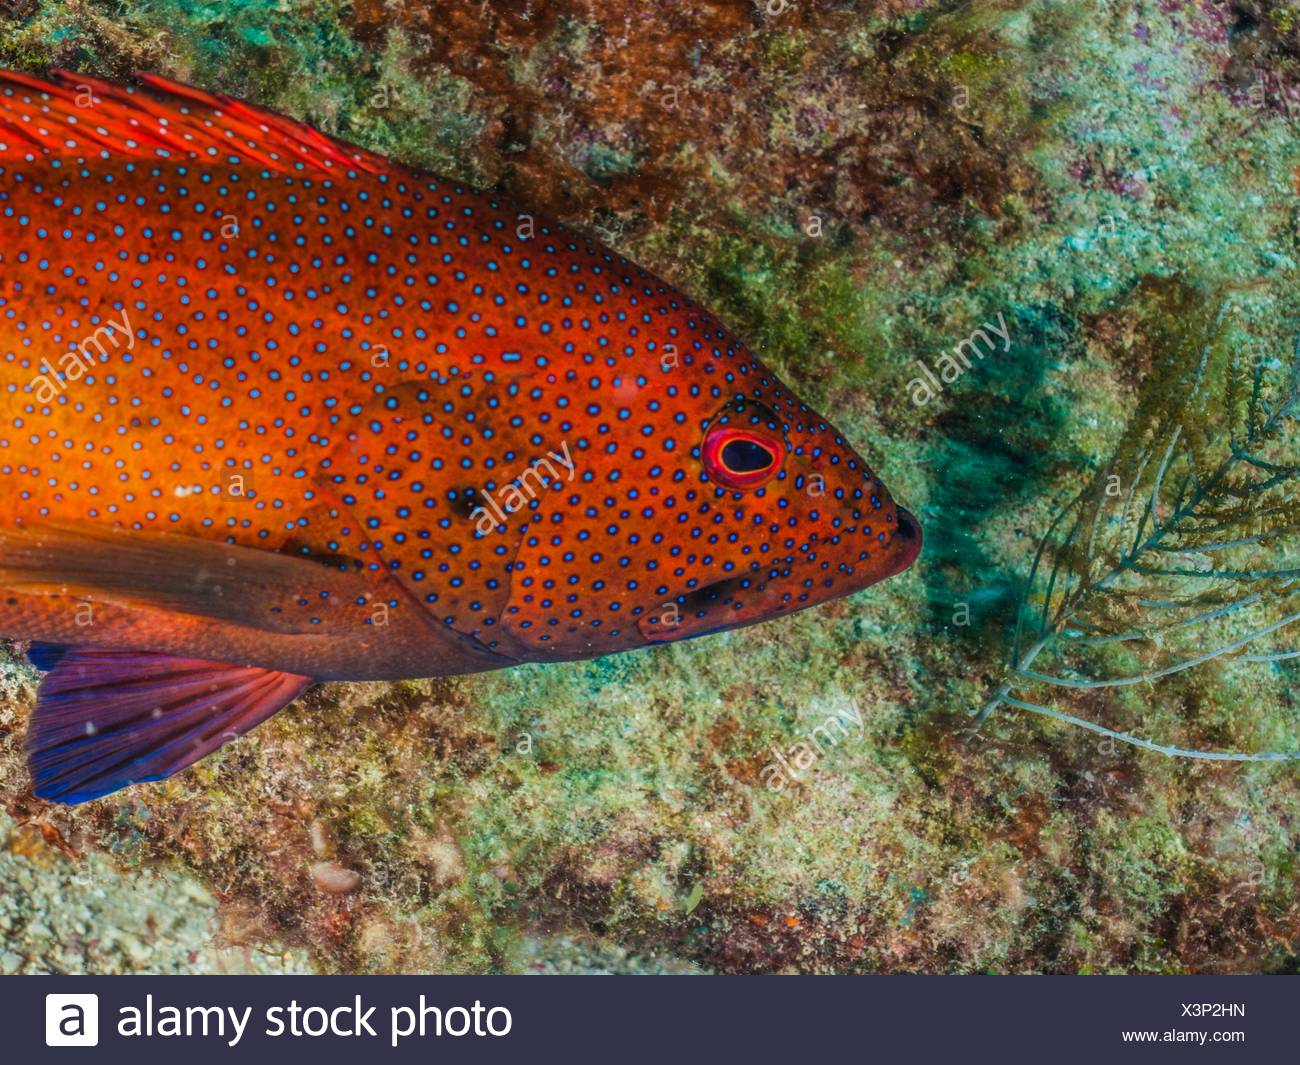 Blue Spot Grouper Stock Photos & Blue Spot Grouper Stock Images - Alamy